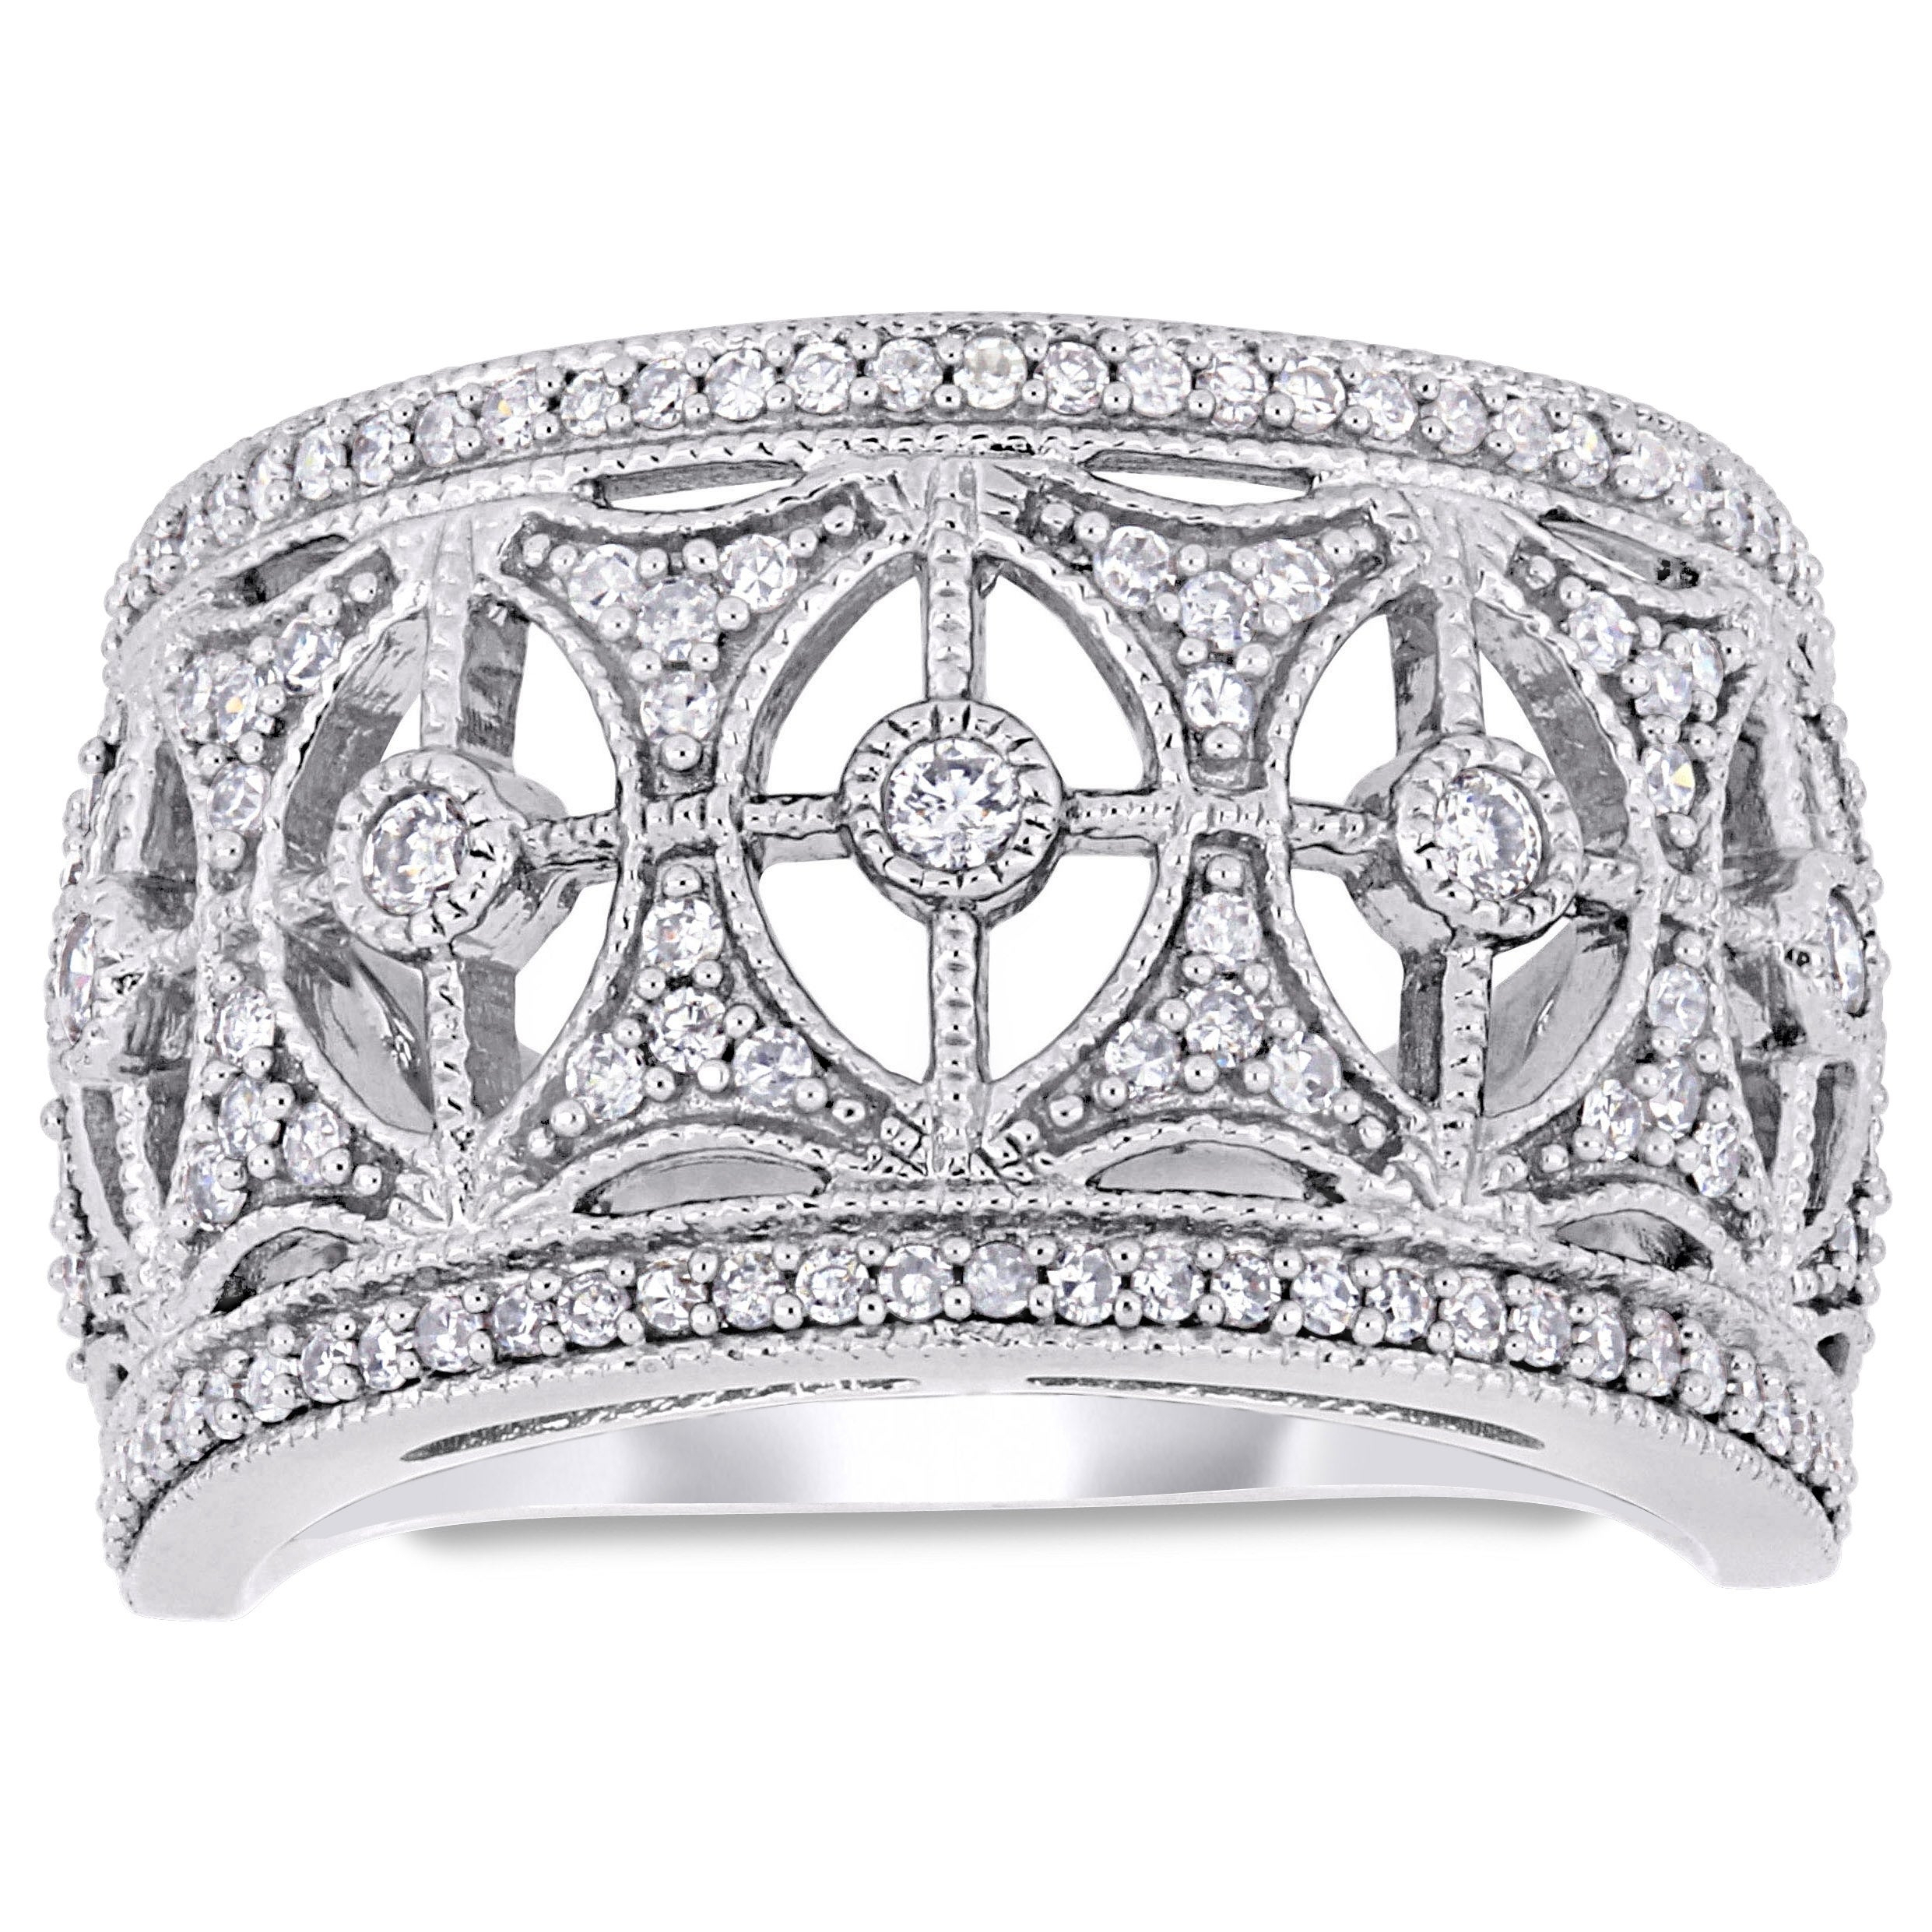 Miadora Signature Collection 10K White Gold 1/2Ct Tdw Diamond Filigree  Anniversary Band Pertaining To 2019 Diamond Bubble Five Stone Anniversary Bands In White Gold (View 21 of 25)